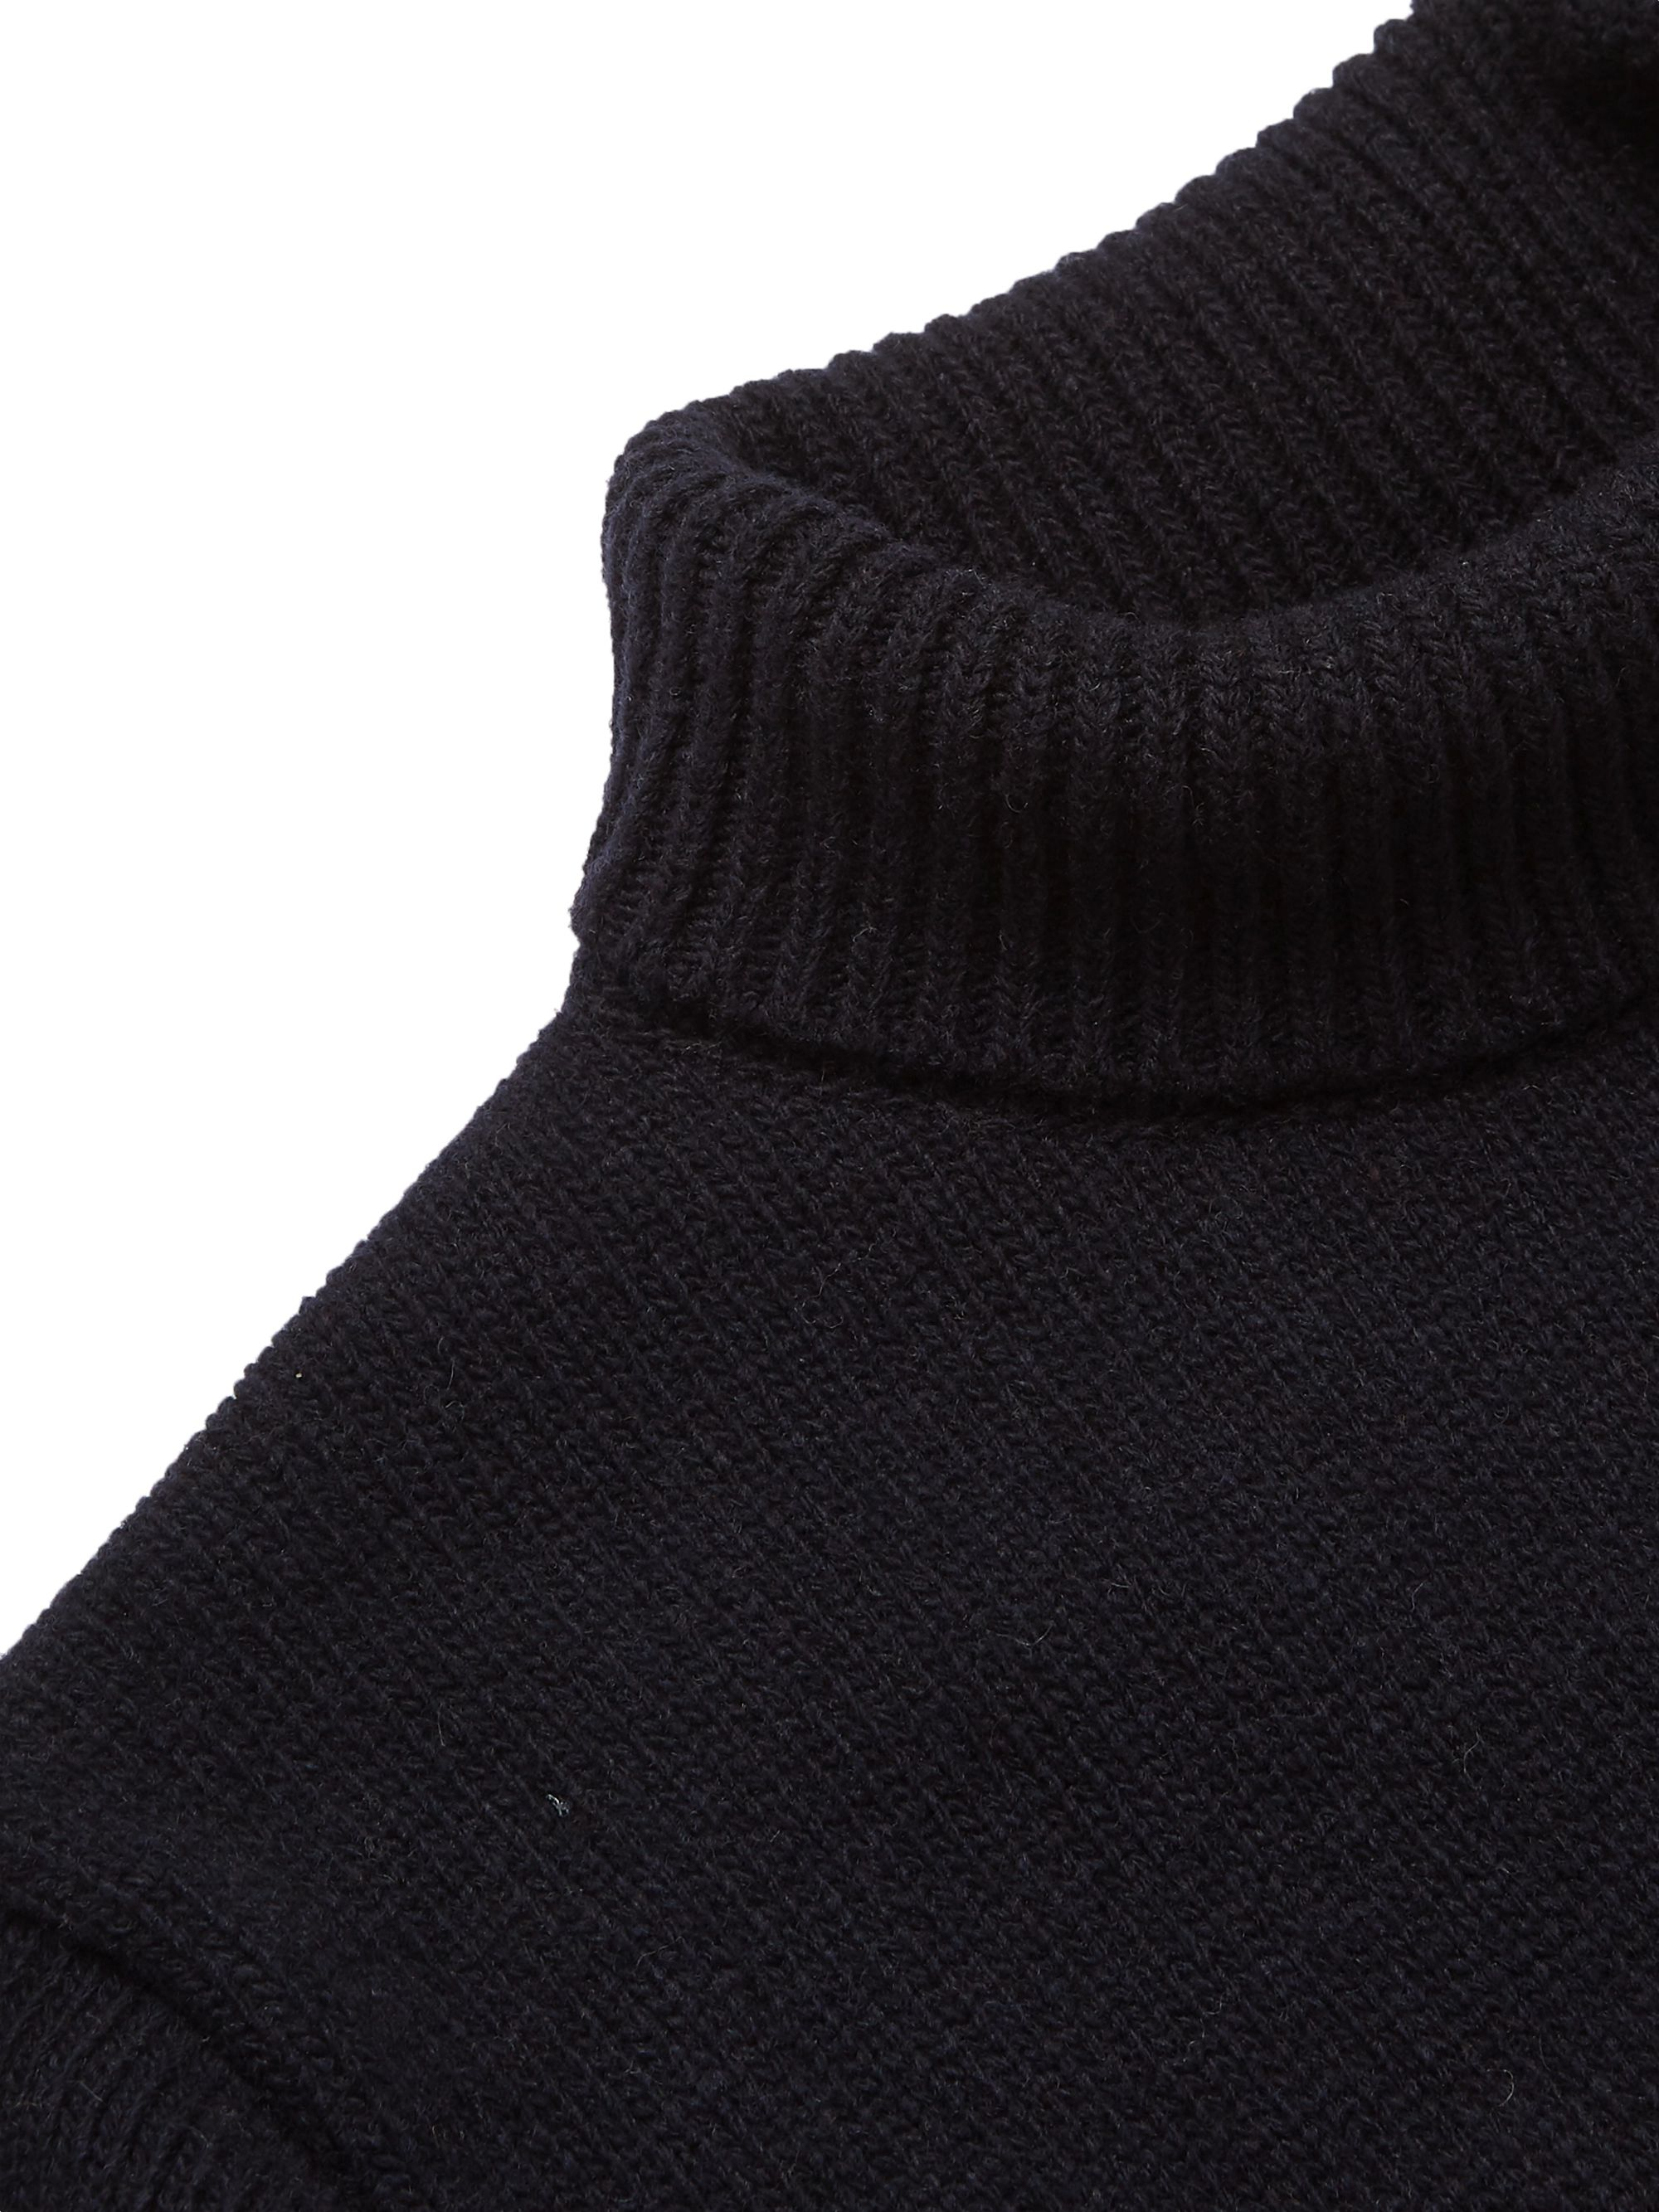 Oliver Spencer Talbot Slim-Fit Wool-Jacquard Rollneck Sweater